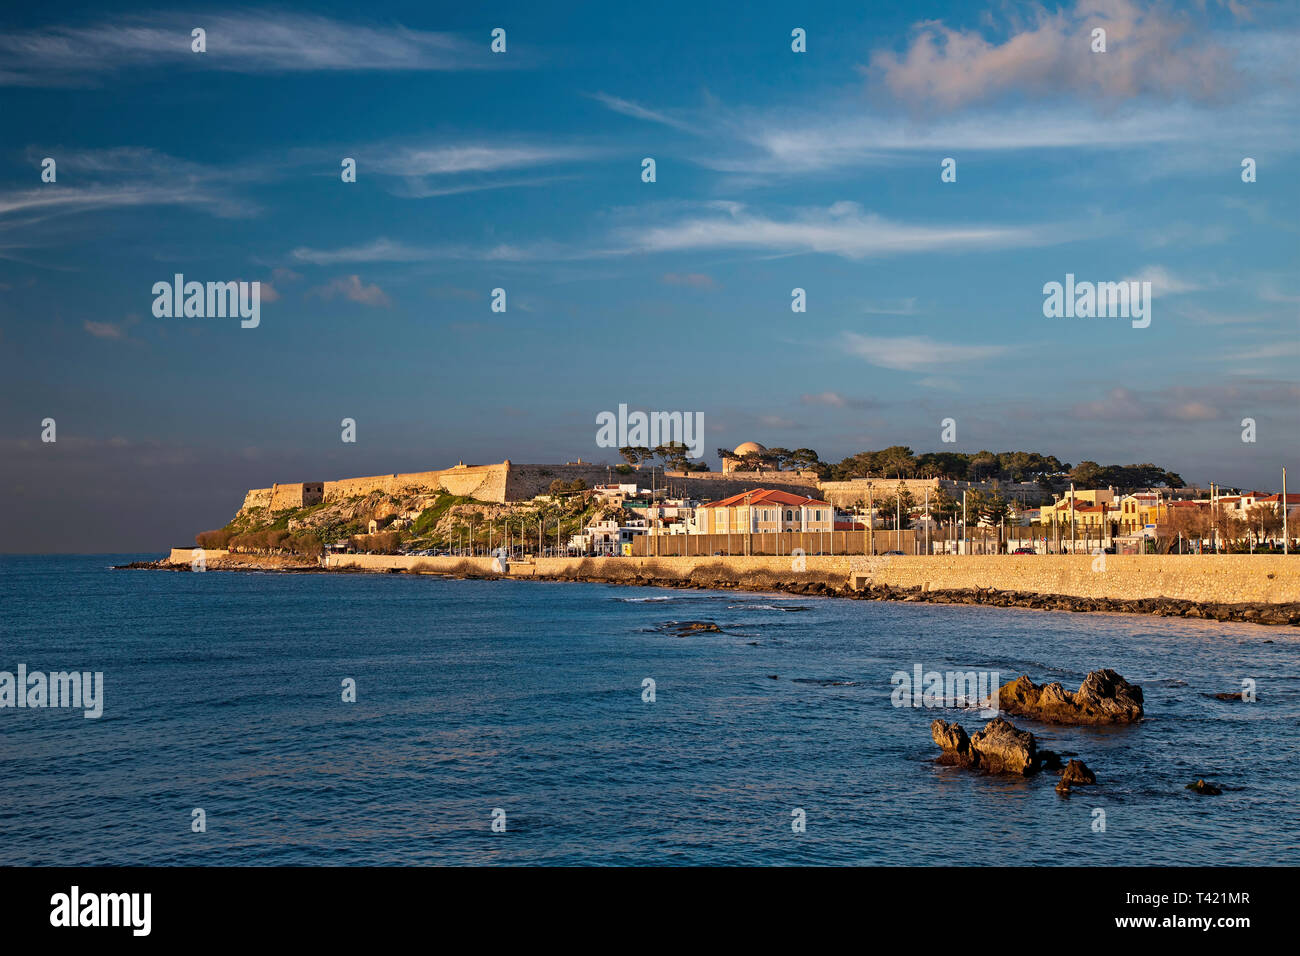 View of Fortezza, the castle of Rethimno town, late in the afternoon. Crete island, Greece. - Stock Image